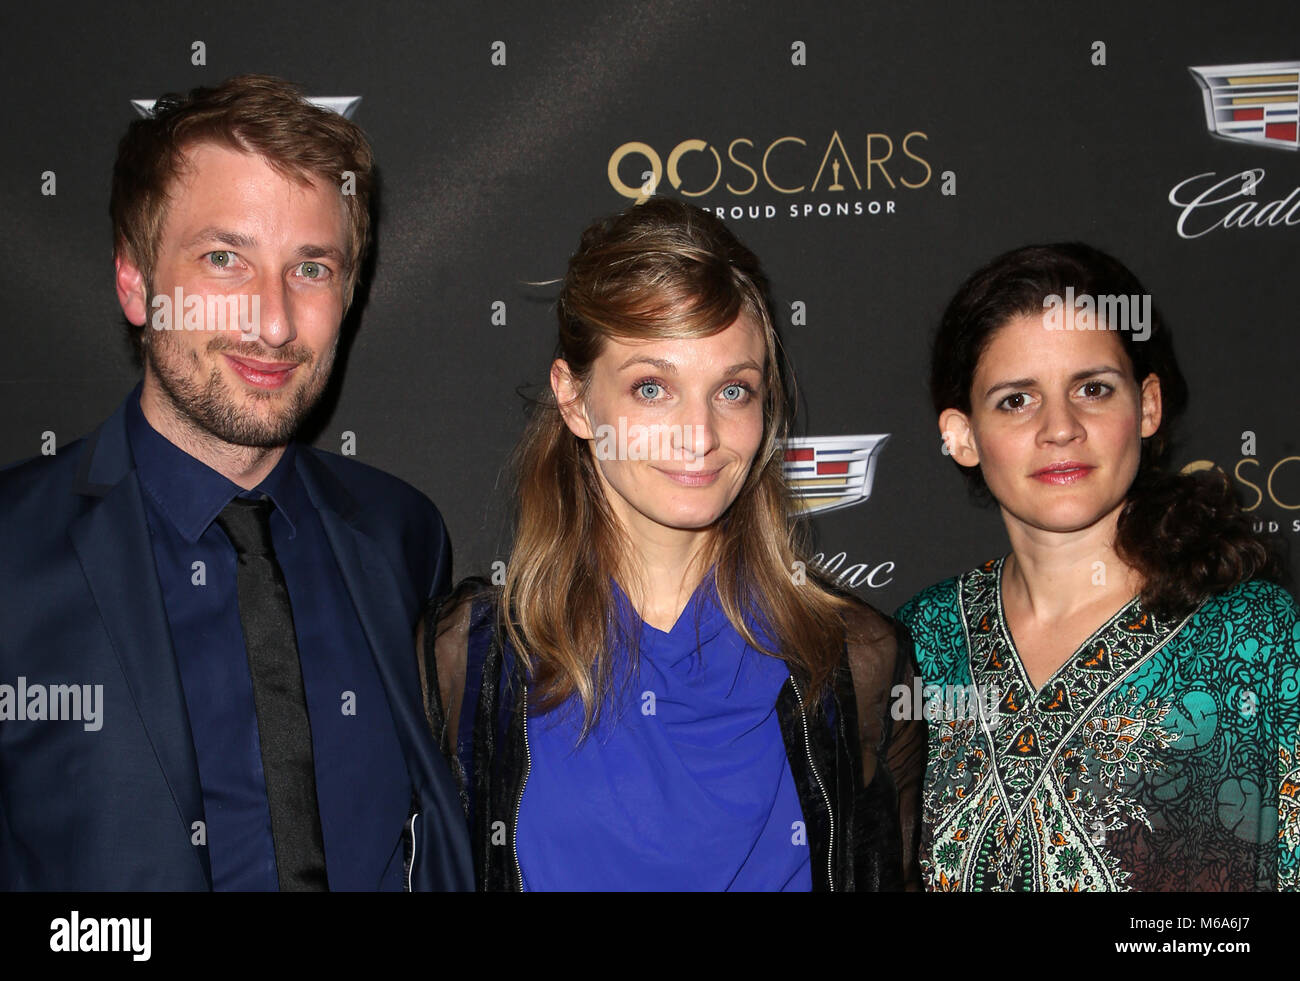 Benrath Roter Teppich West Hollywood Ca 1 Mär 2018 Julia Drache Tobias Rosen Katja